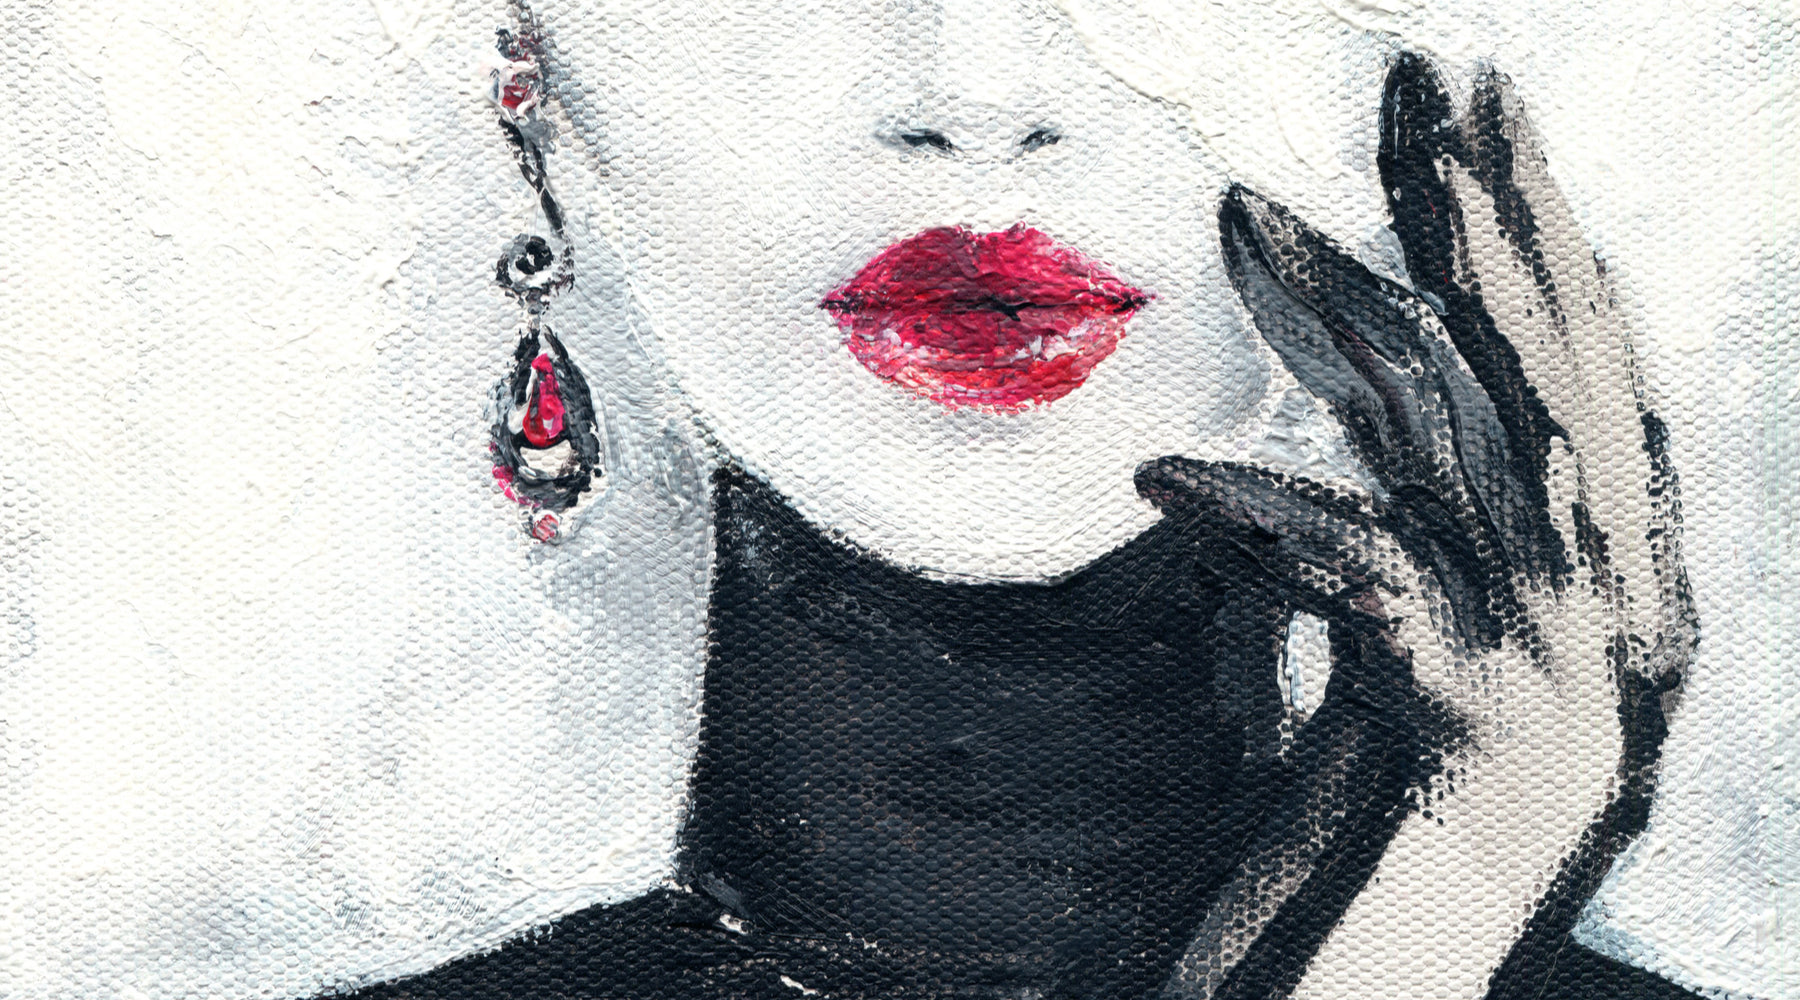 Brokedown Luxury Moissanite Jewelry Collection, painting of woman wearing lipstick